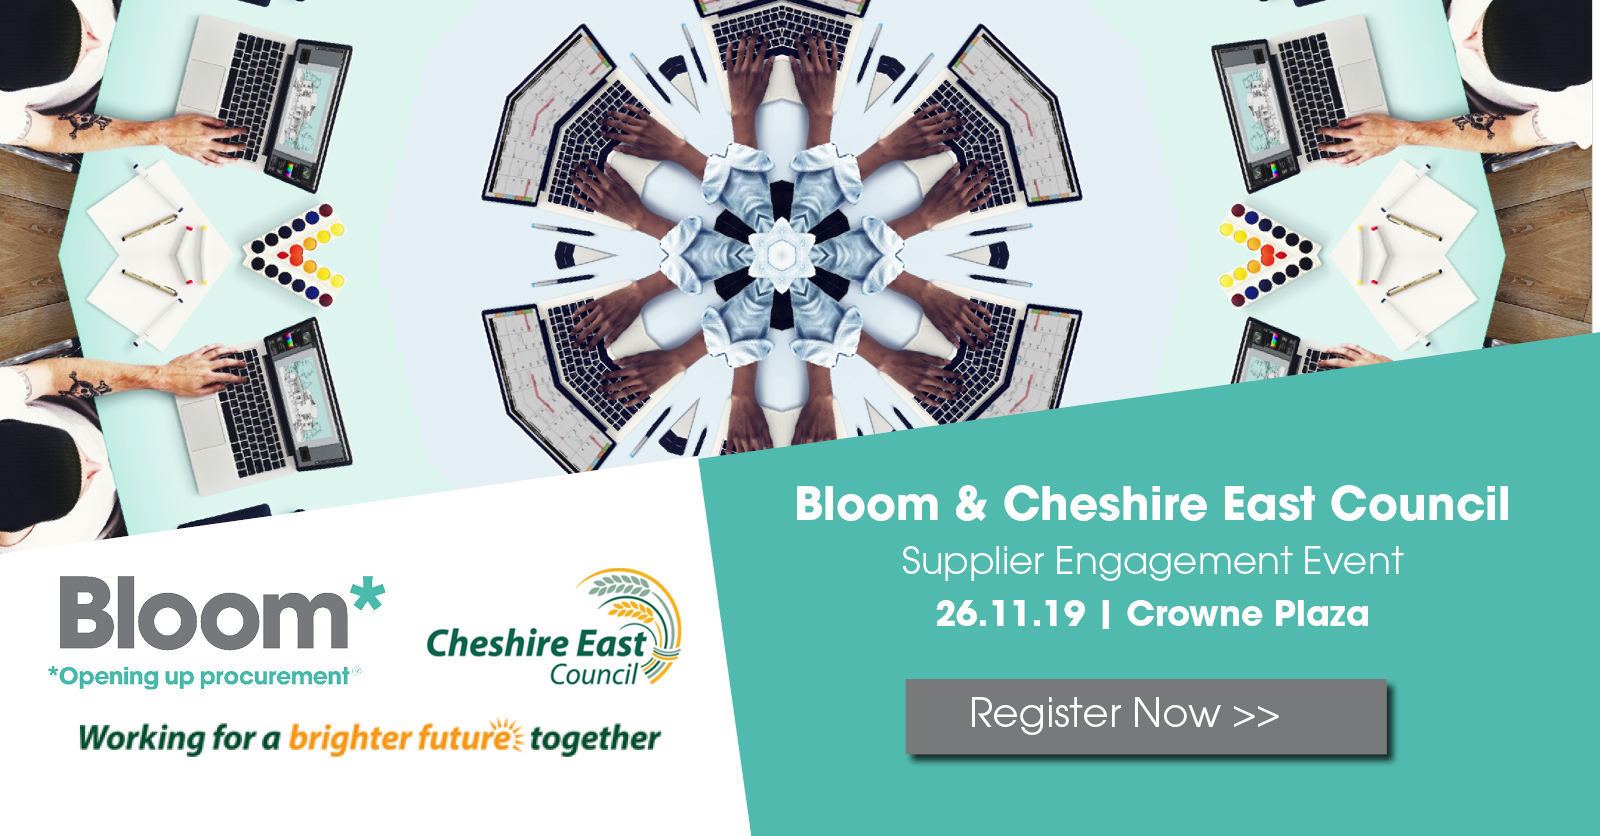 Cheshire East Council & Bloom supplier engagement event